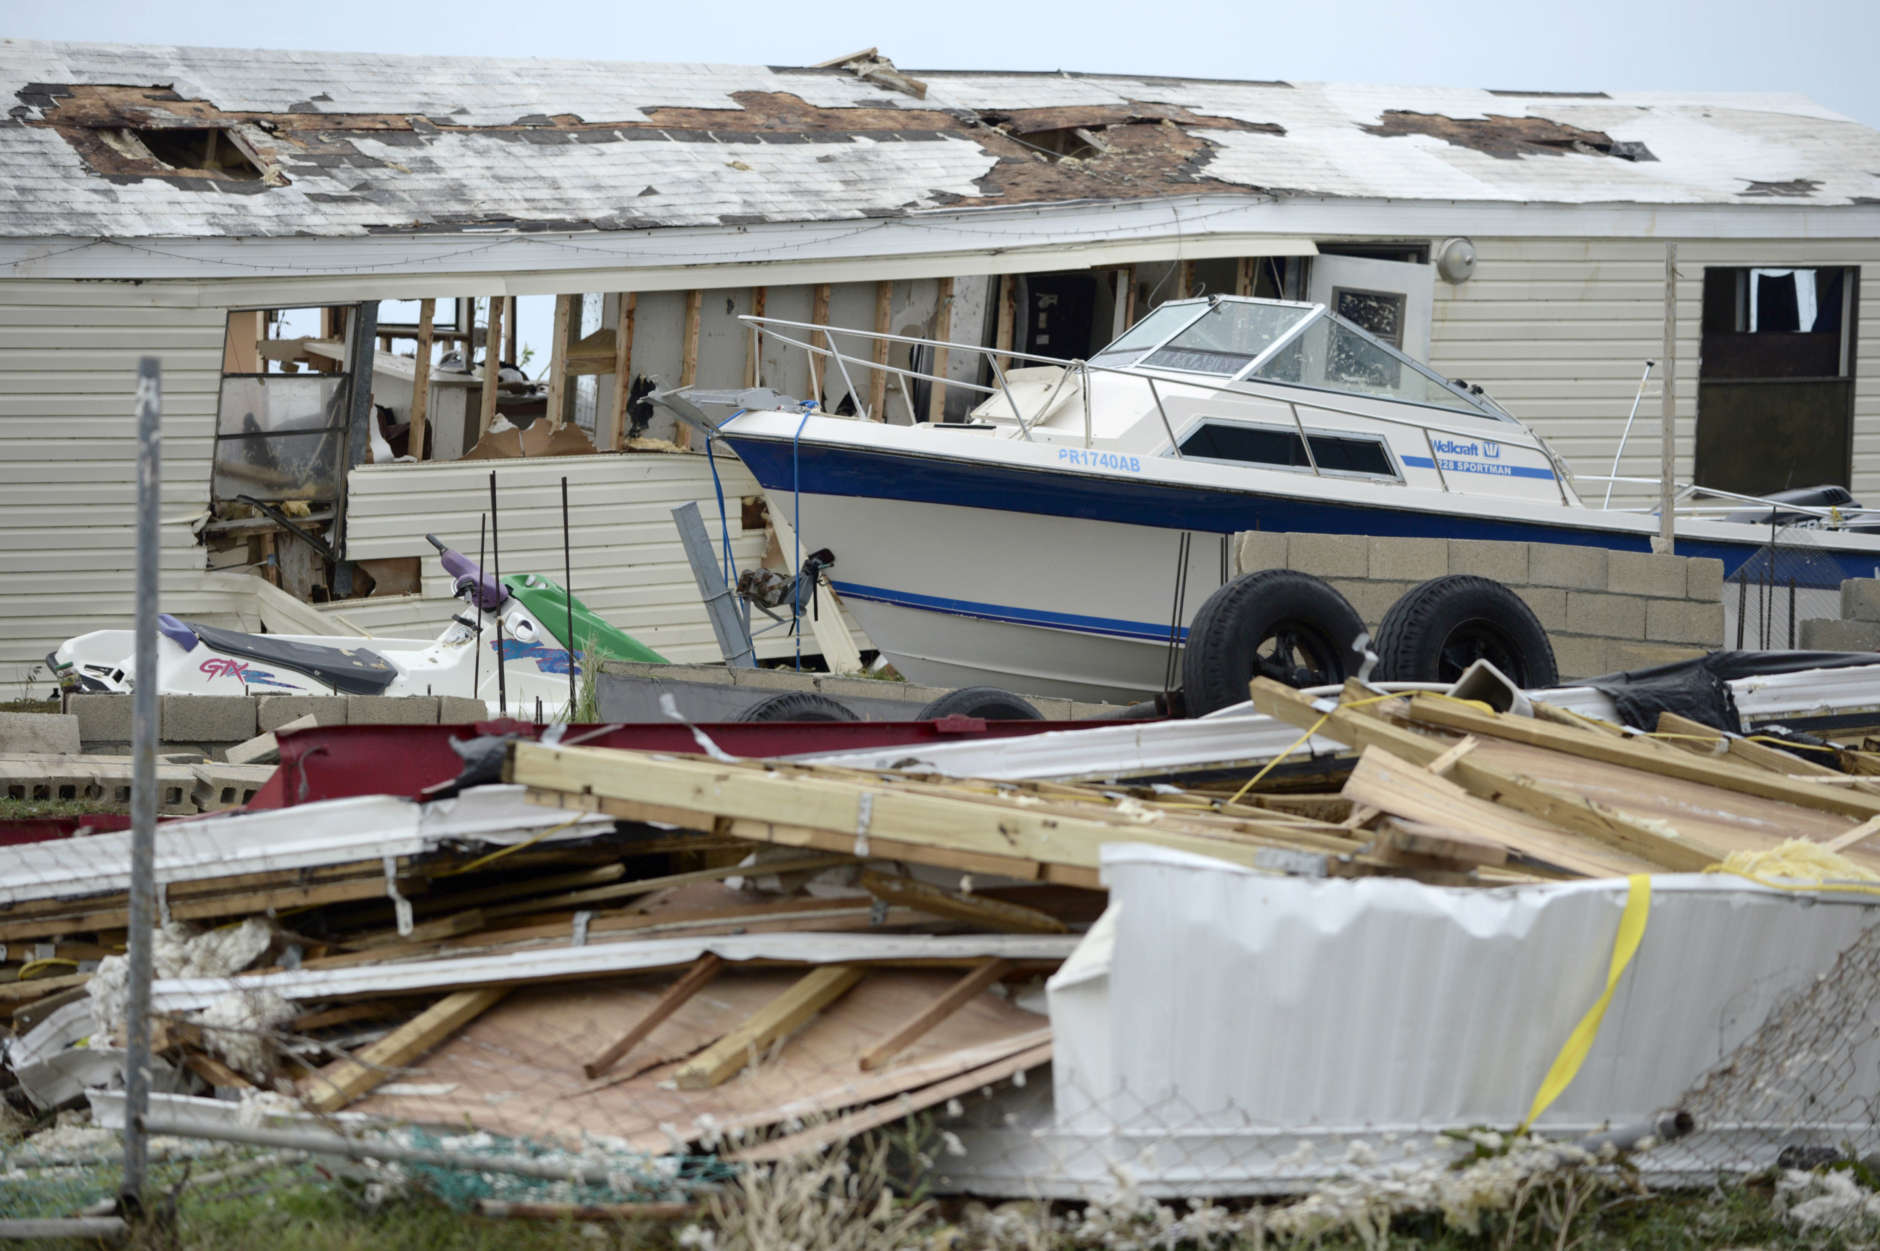 A pleasure boat stands next to a destroyed home after the passing of Hurricane Irma, in Culebra, Puerto Rico, Thursday, Sept. 7, 2017. About a million people were without power in the U.S. territory after Irma passed just to the north, lashing the island with heavy wind and rain. Nearly 50,000 also were without water. (AP Photo/Carlos Giusti)